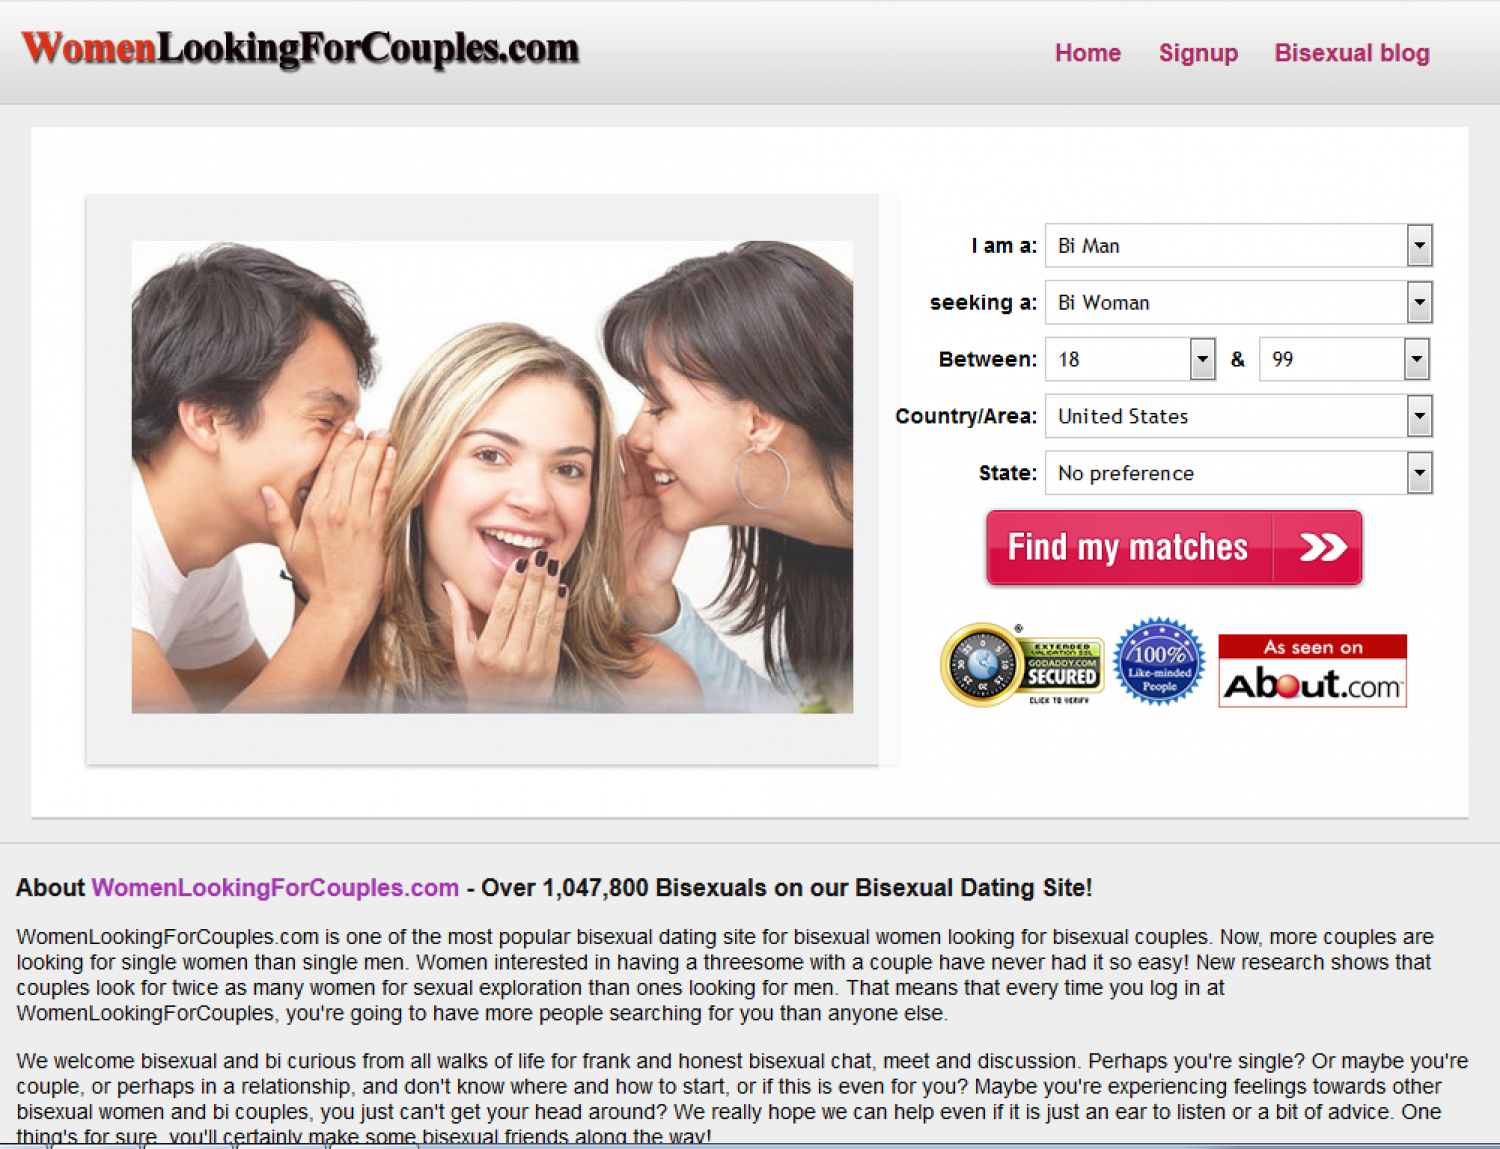 Women Looking For Couples Infographic